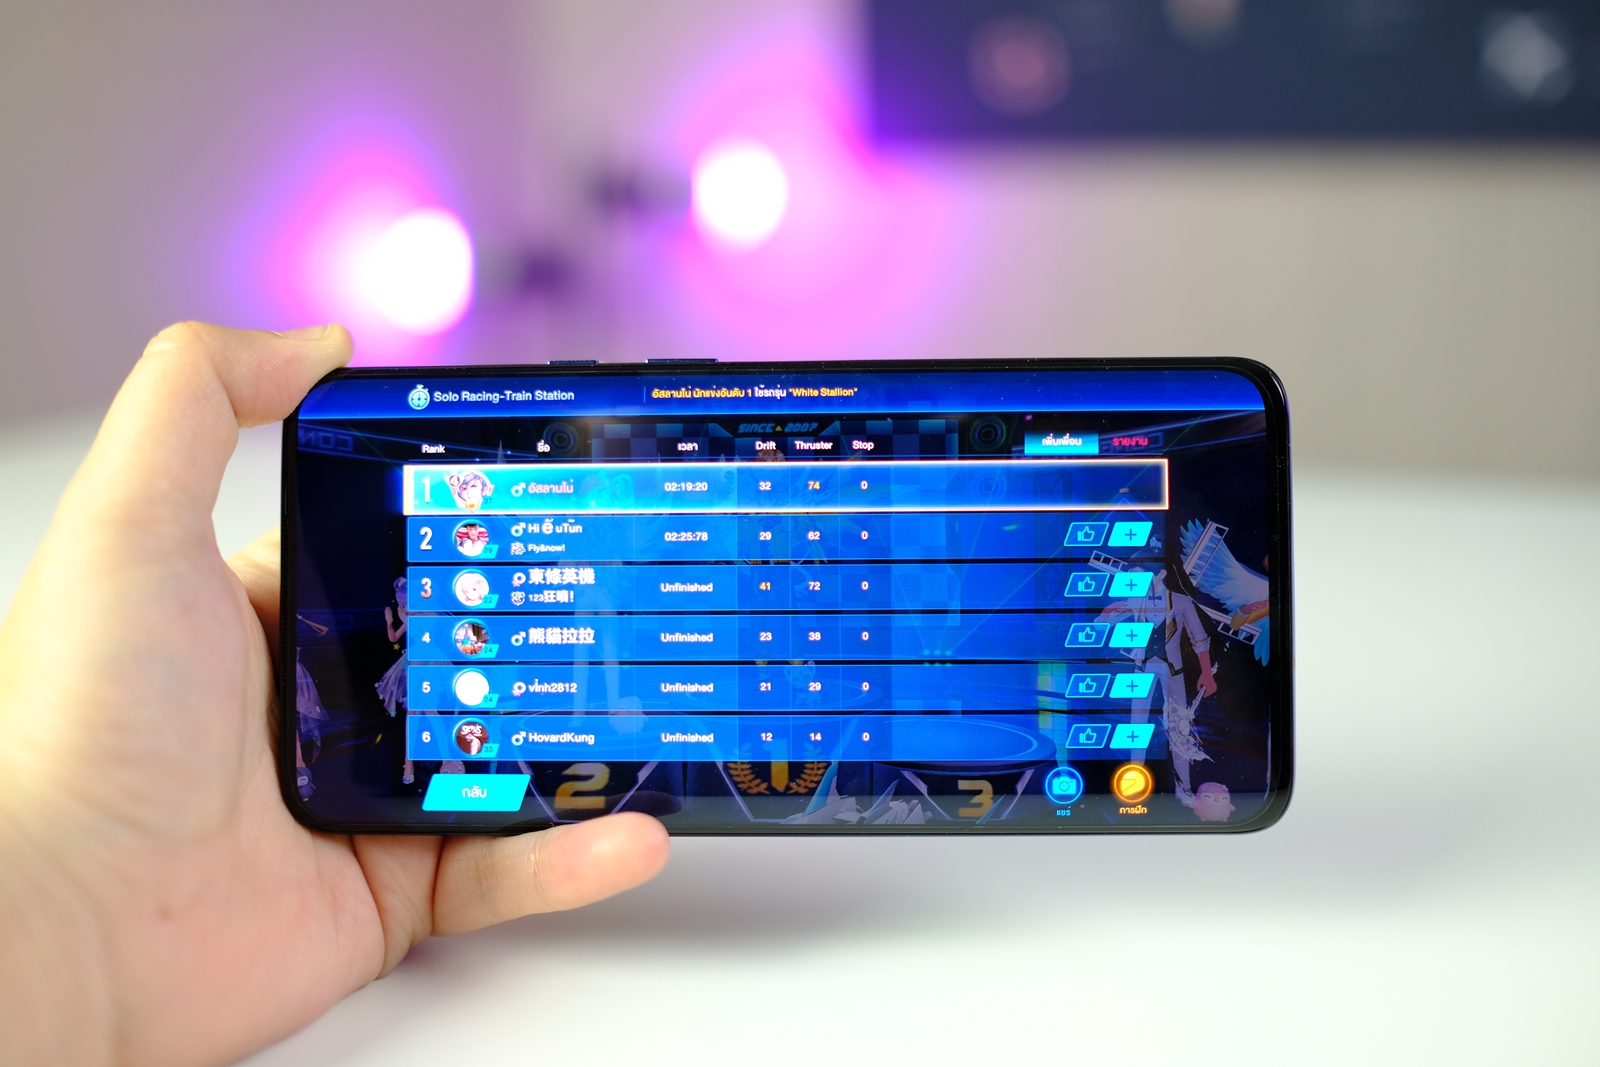 OnePlus 7T Pro game